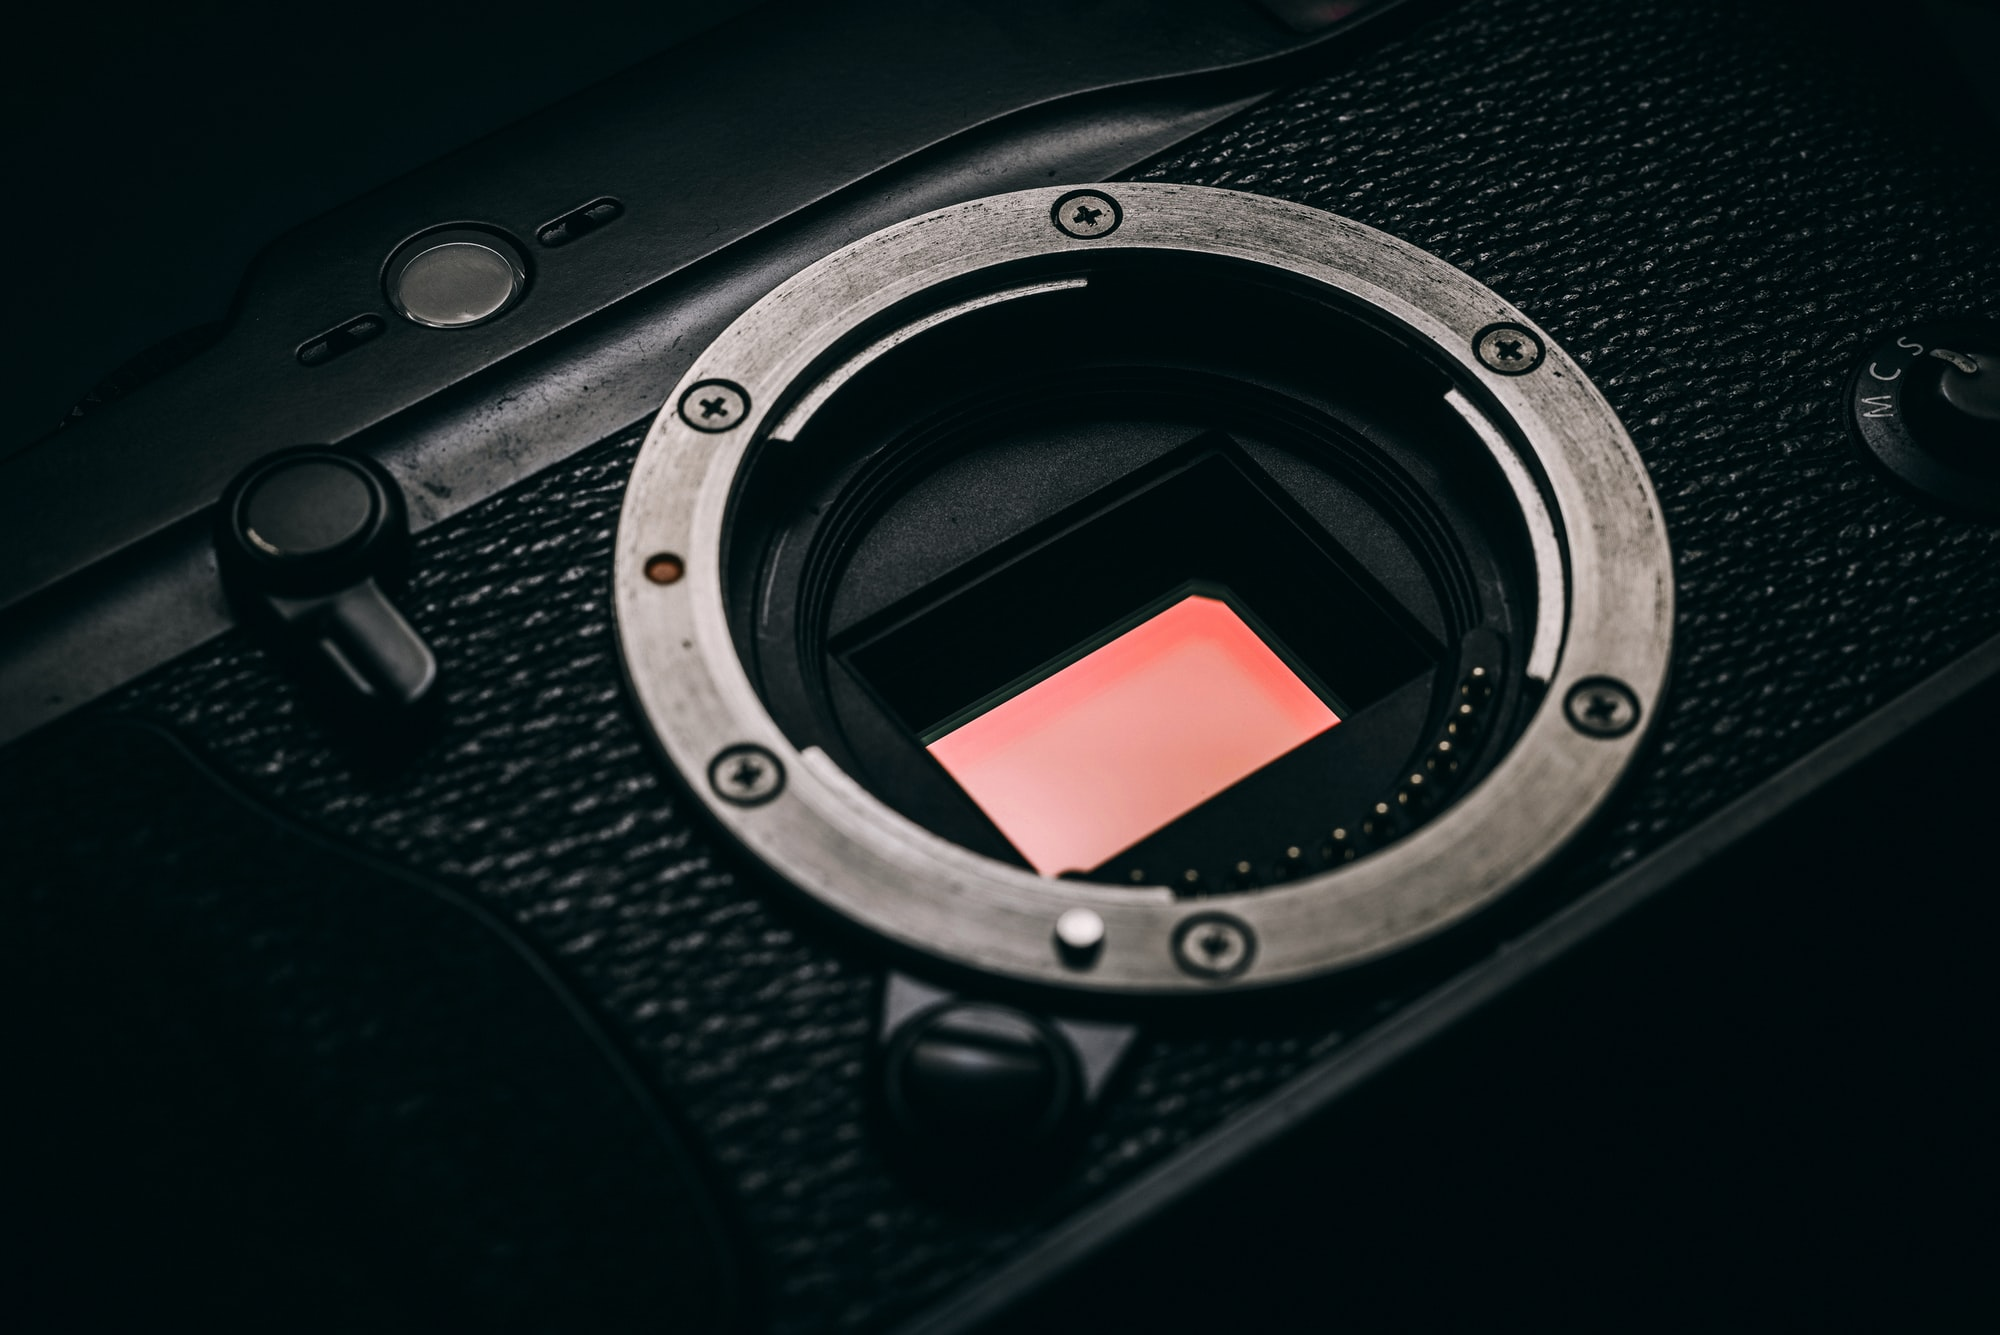 A close-up image of a digital camera with no lens and shutter raised so that the sensor is visible.